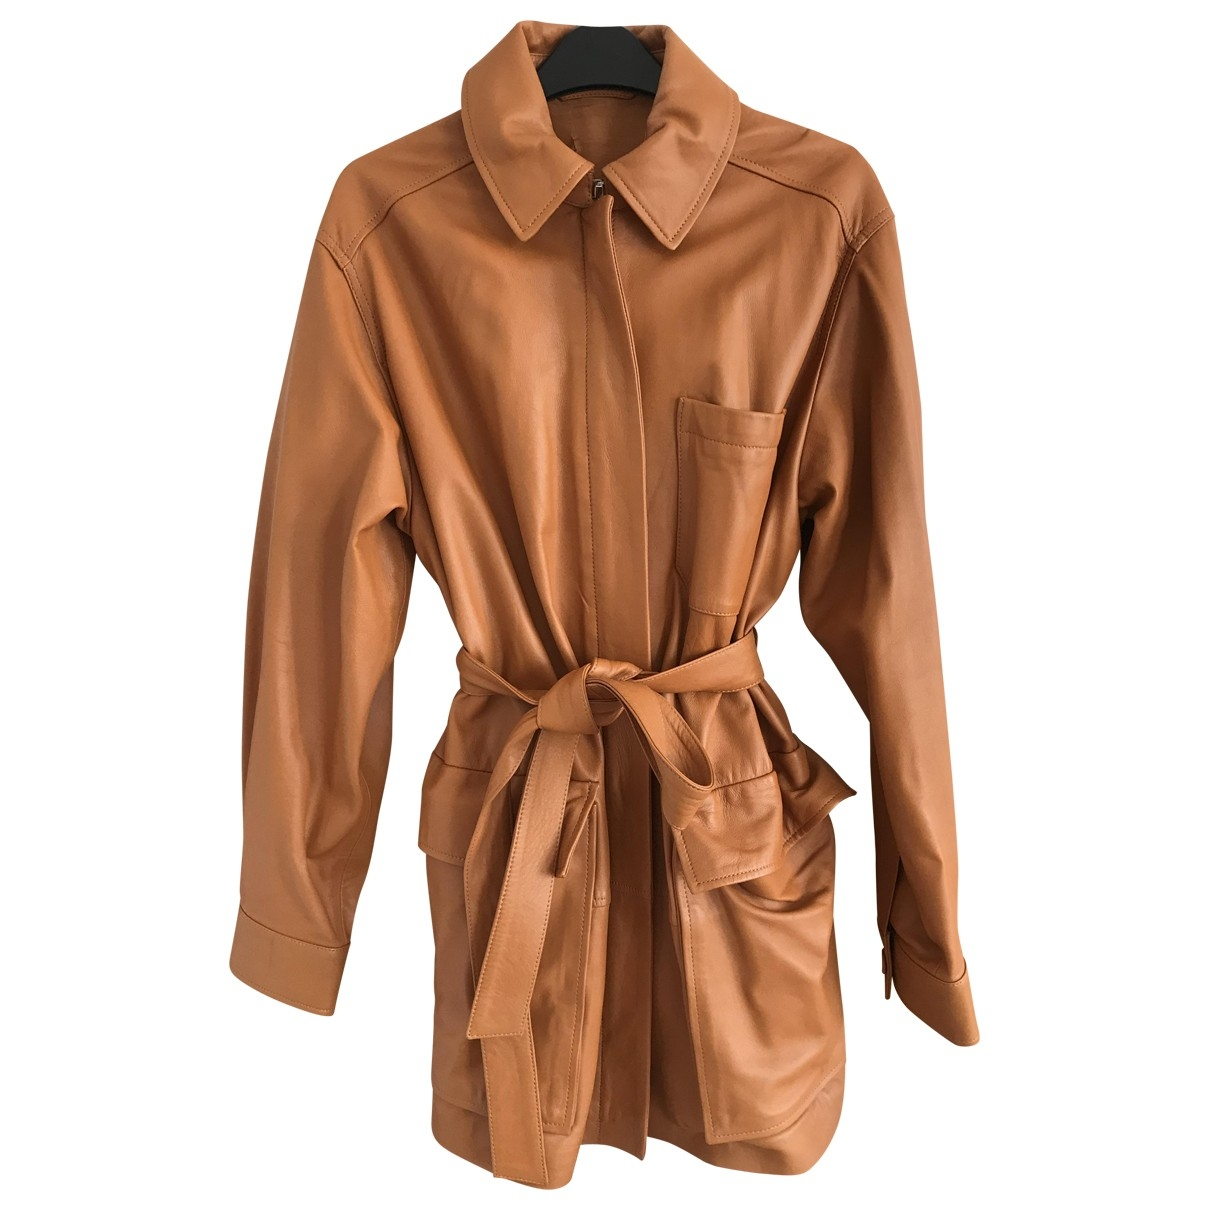 Hm Conscious Exclusive \N Brown Leather Leather jacket for Women M International